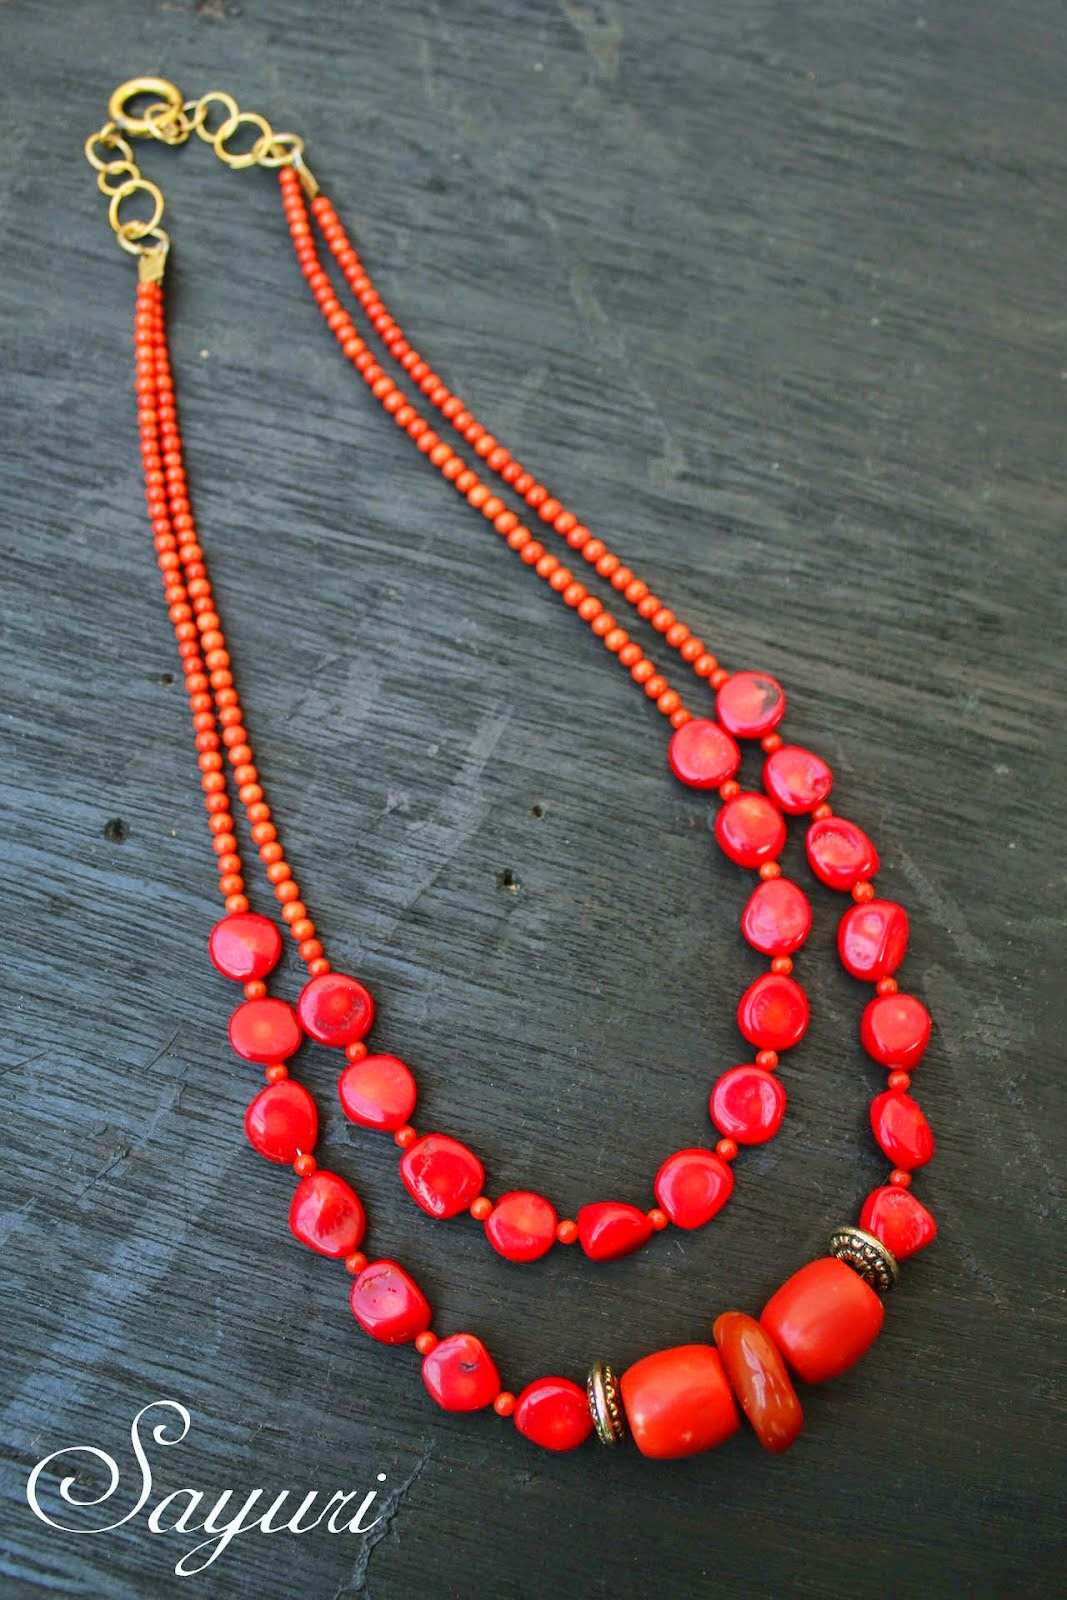 http://www.jewelsofsayuri.com/2014/12/diy-christmas-coral-necklace.html